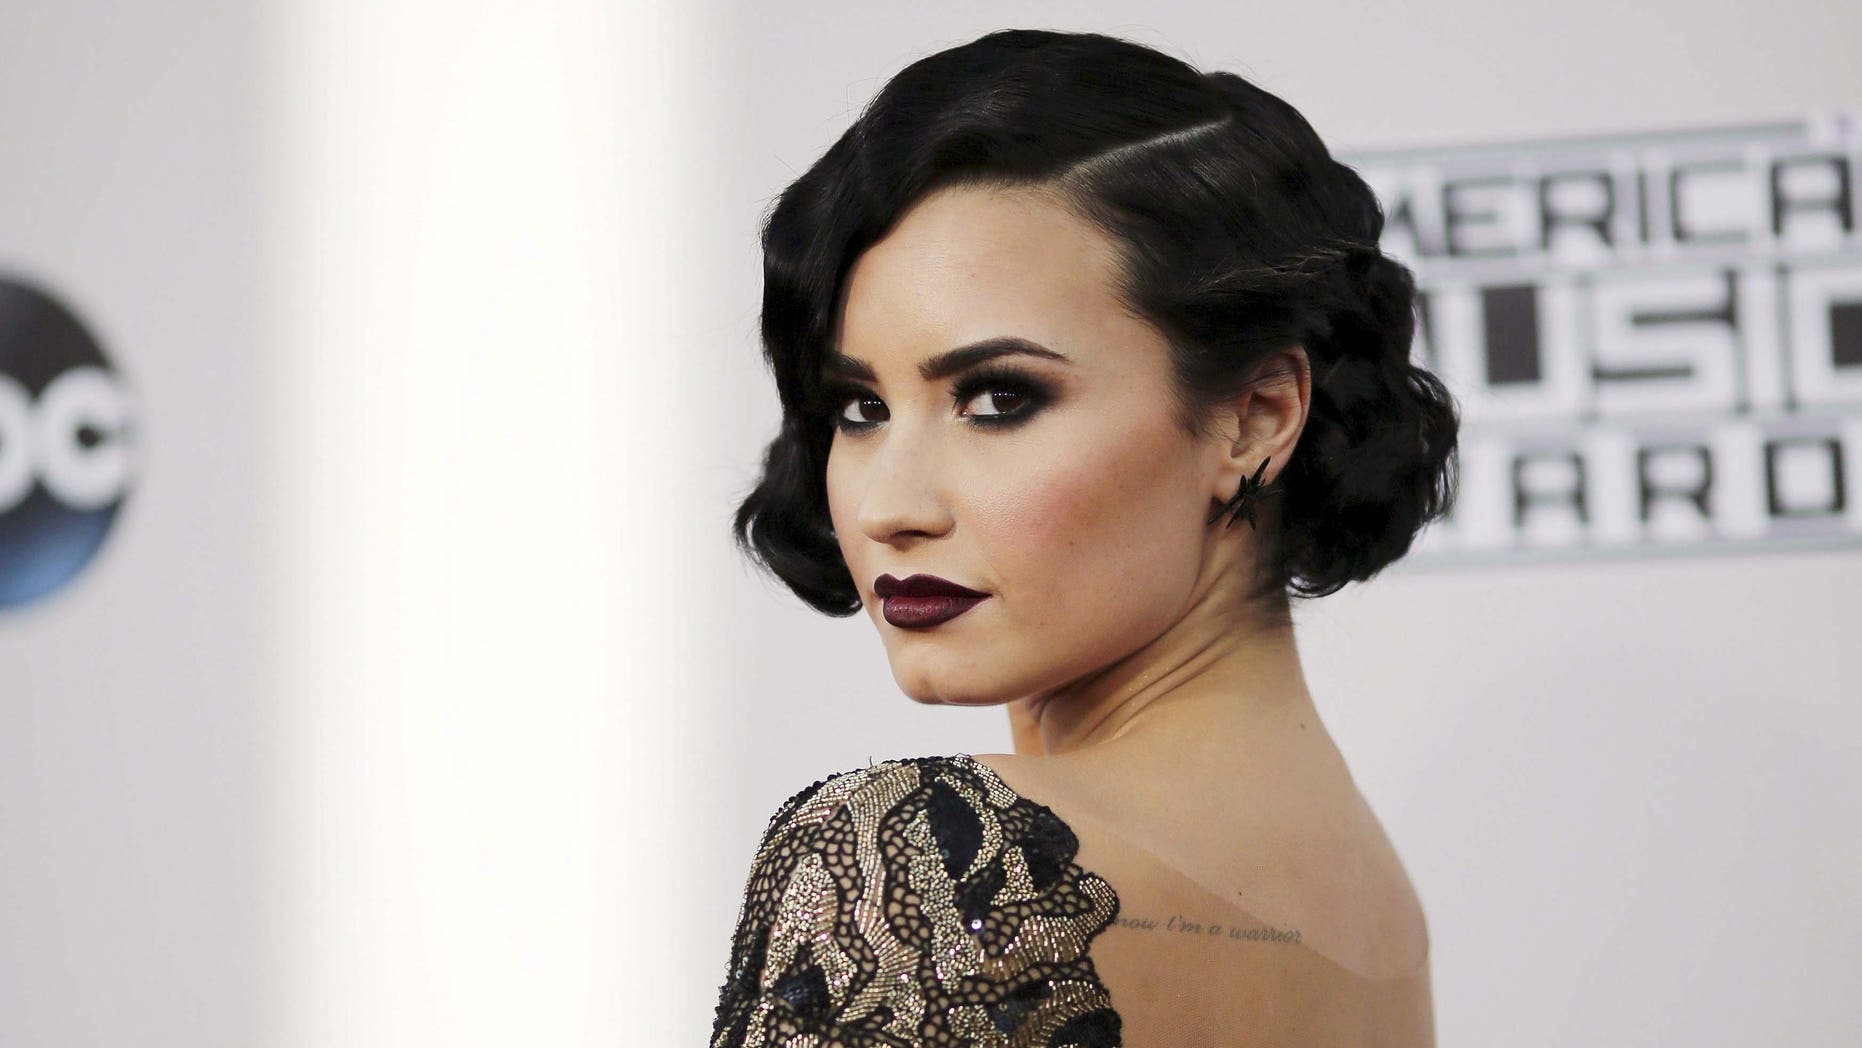 November 22, 2015. Singer Demi Lovato arrives at the 2015 American Music Awards in Los Angeles, California.